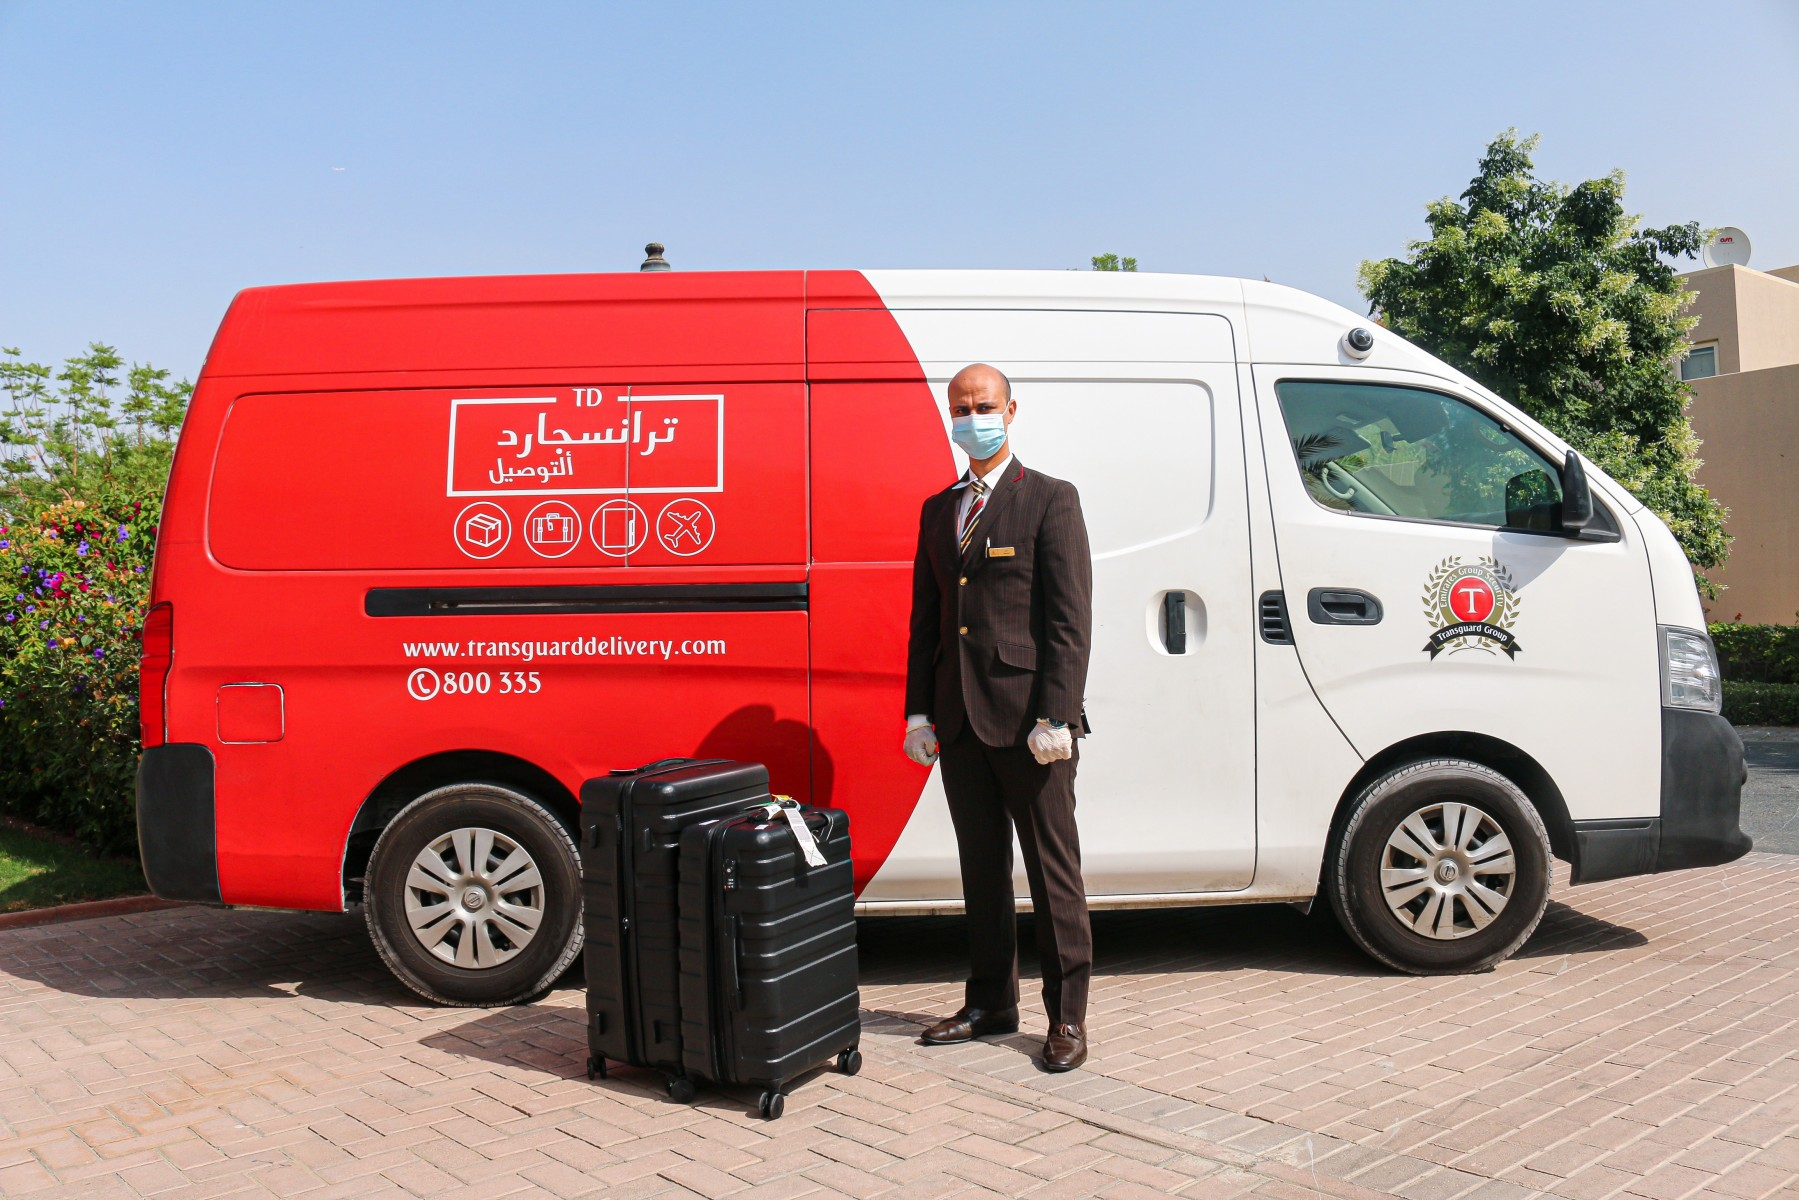 DUBZ offers innovative home-check in services to Emirates passengers